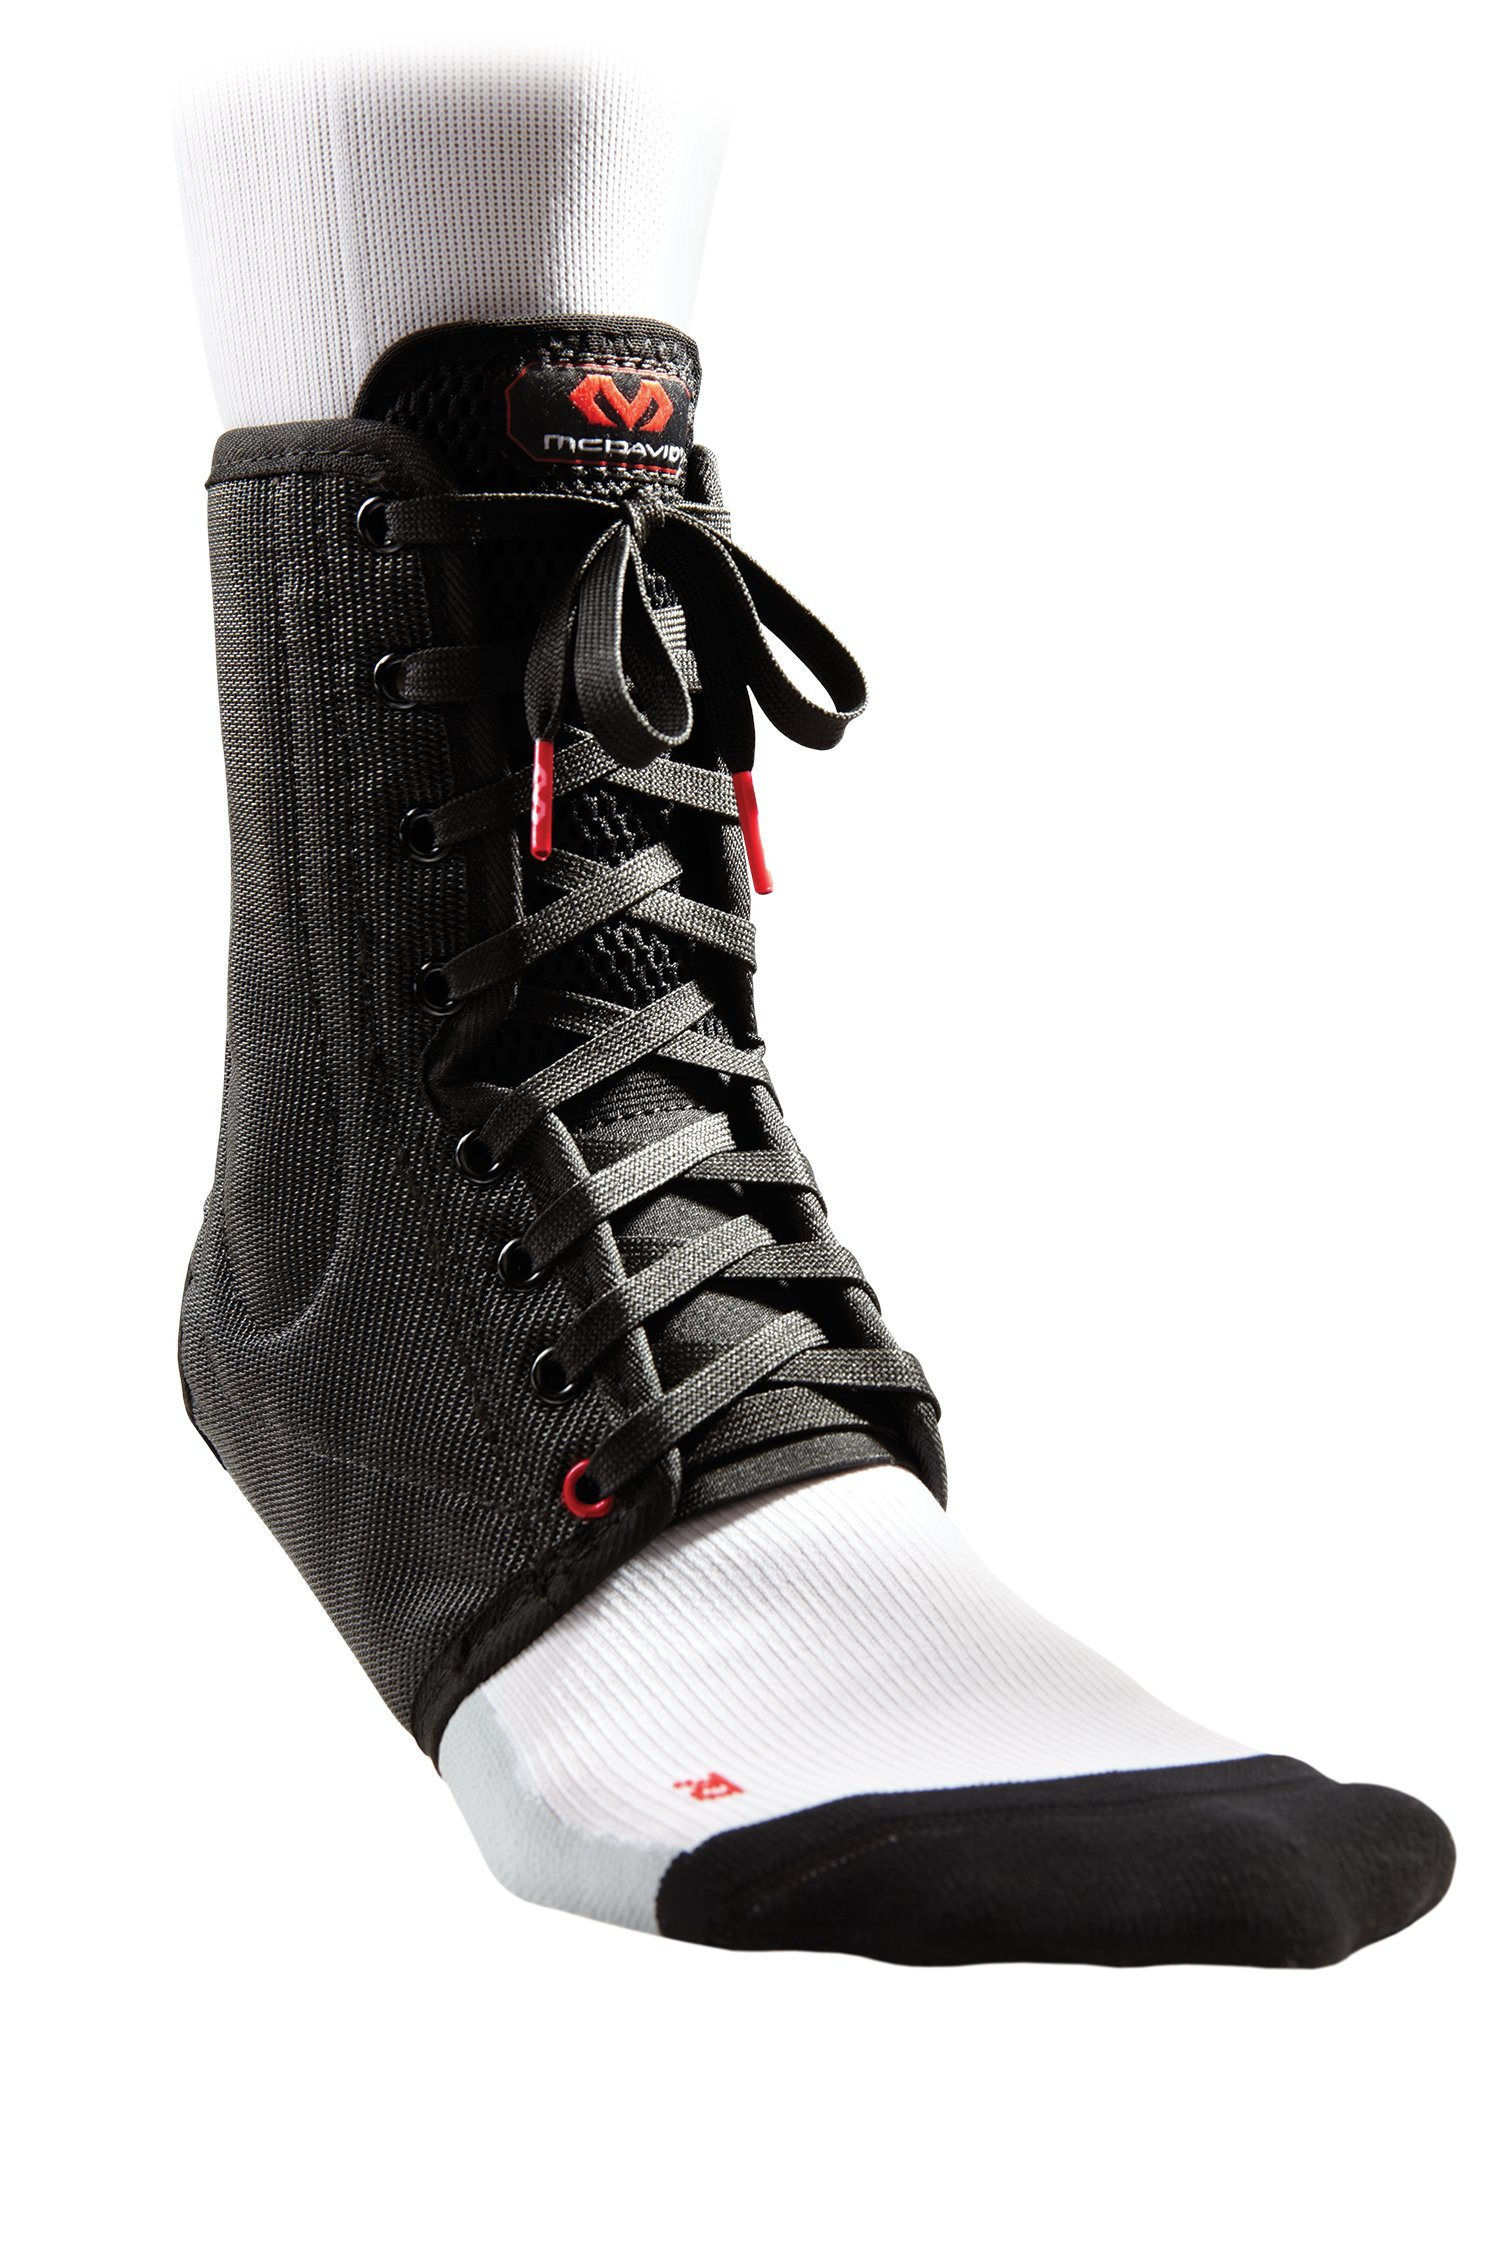 McDavid Lightweight Ankle Brace (Black, X-Small) by McDavid (Image #1)